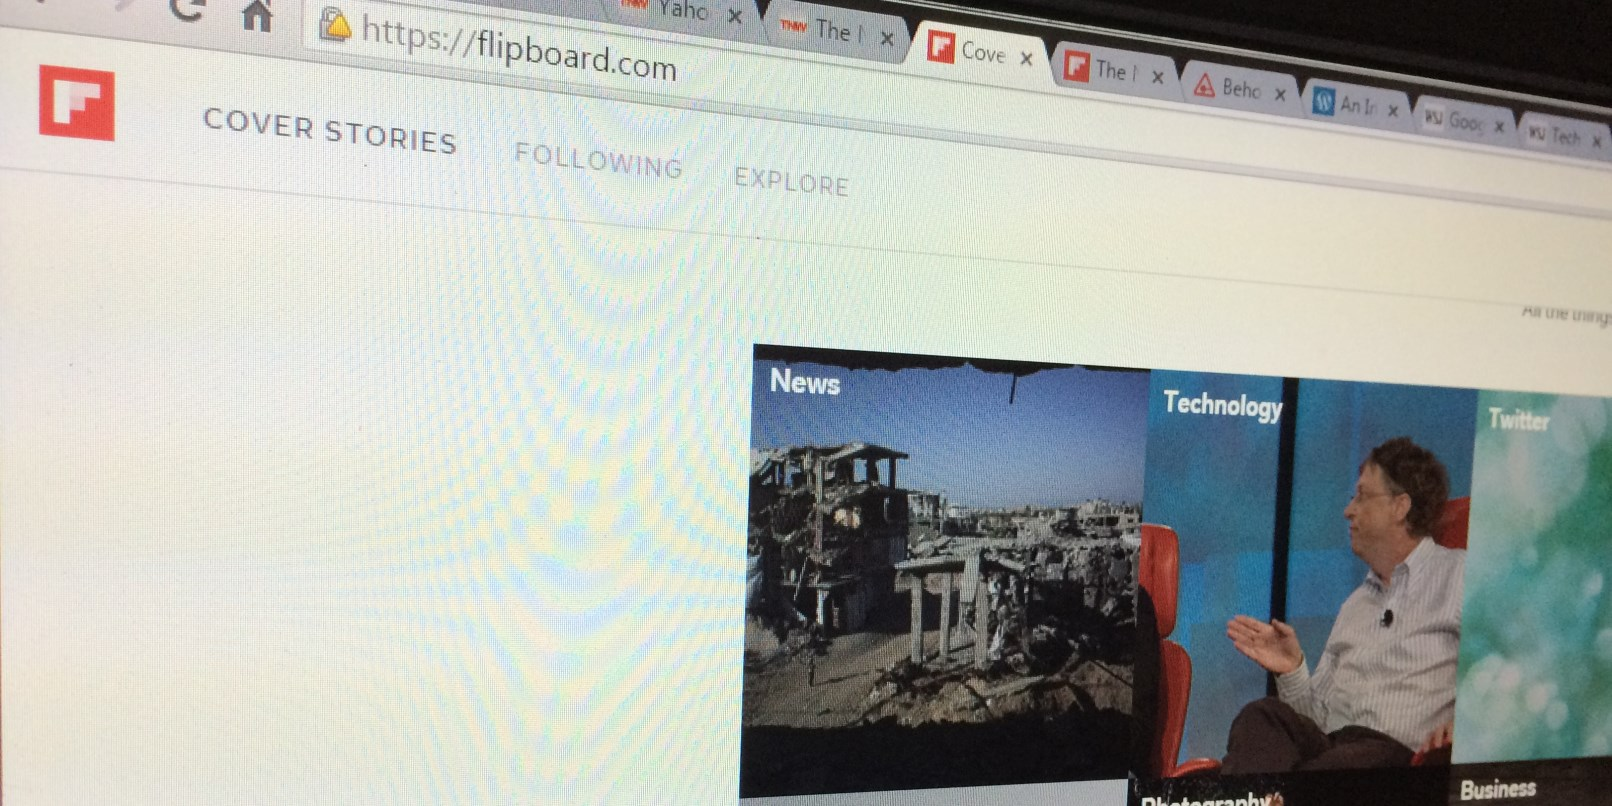 Yahoo and Google want to buy Flipboard to up their content game